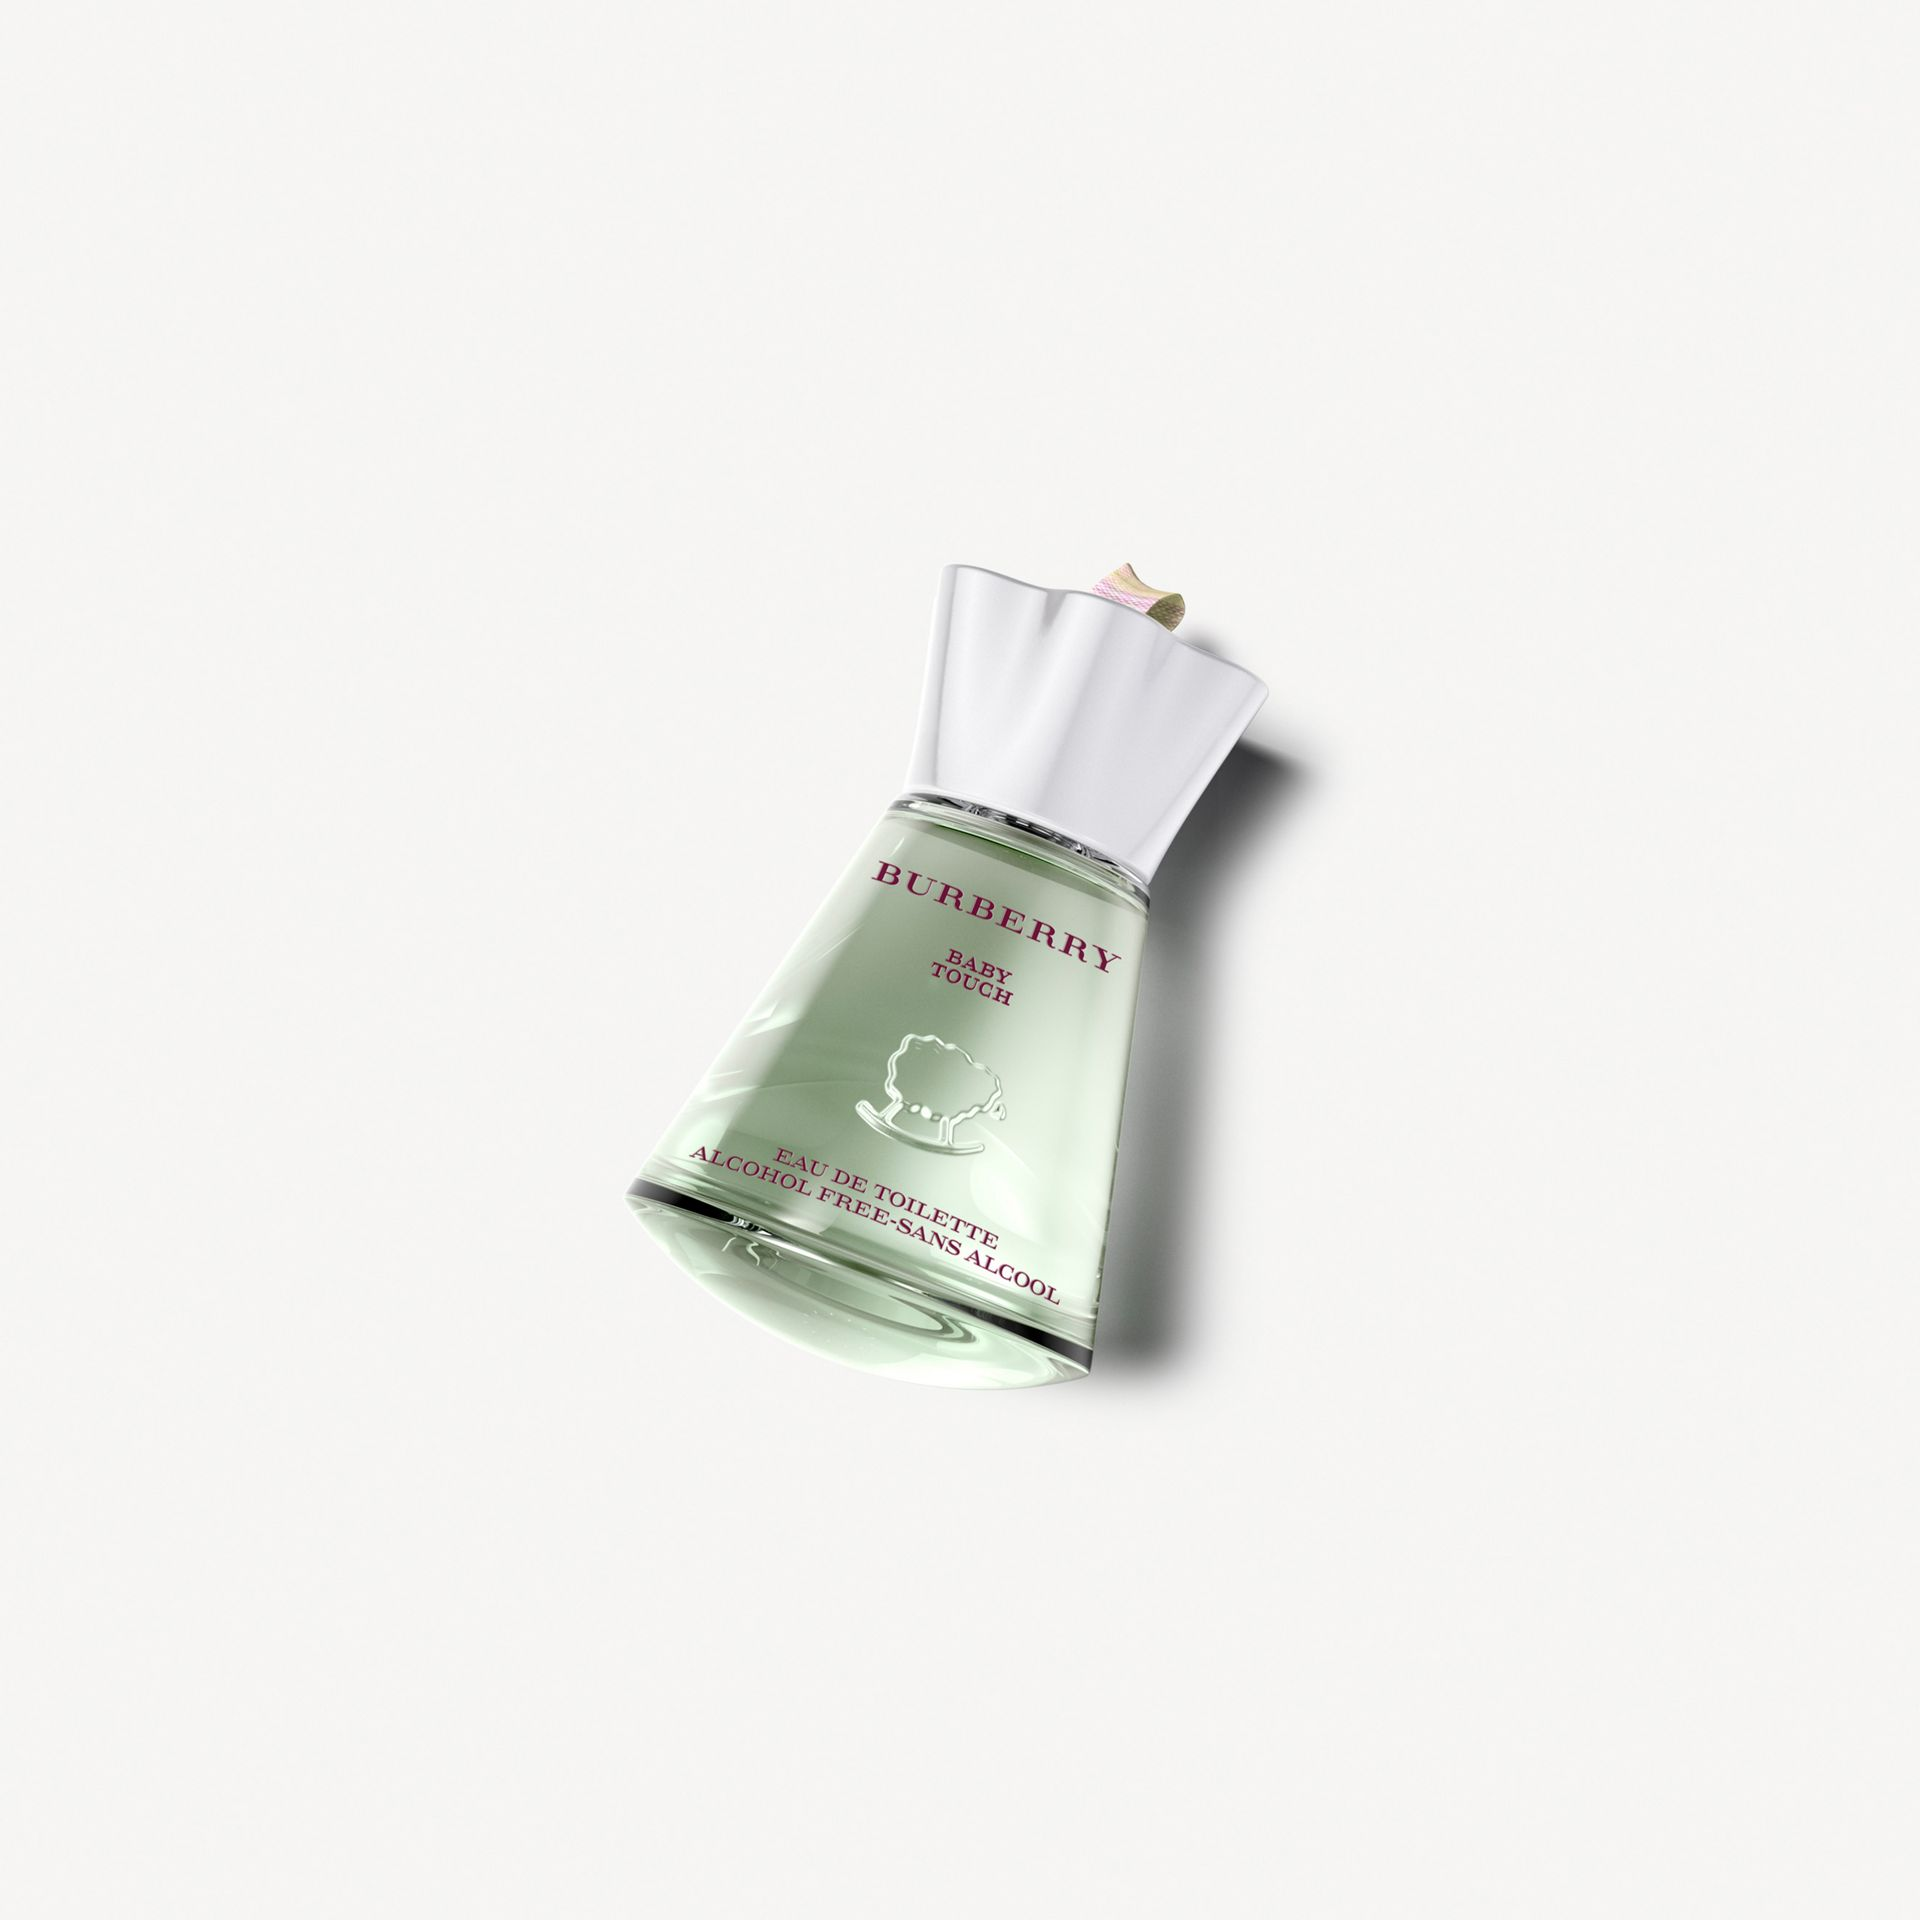 Burberry Baby Touch Alcohol Free 100ml - gallery image 1